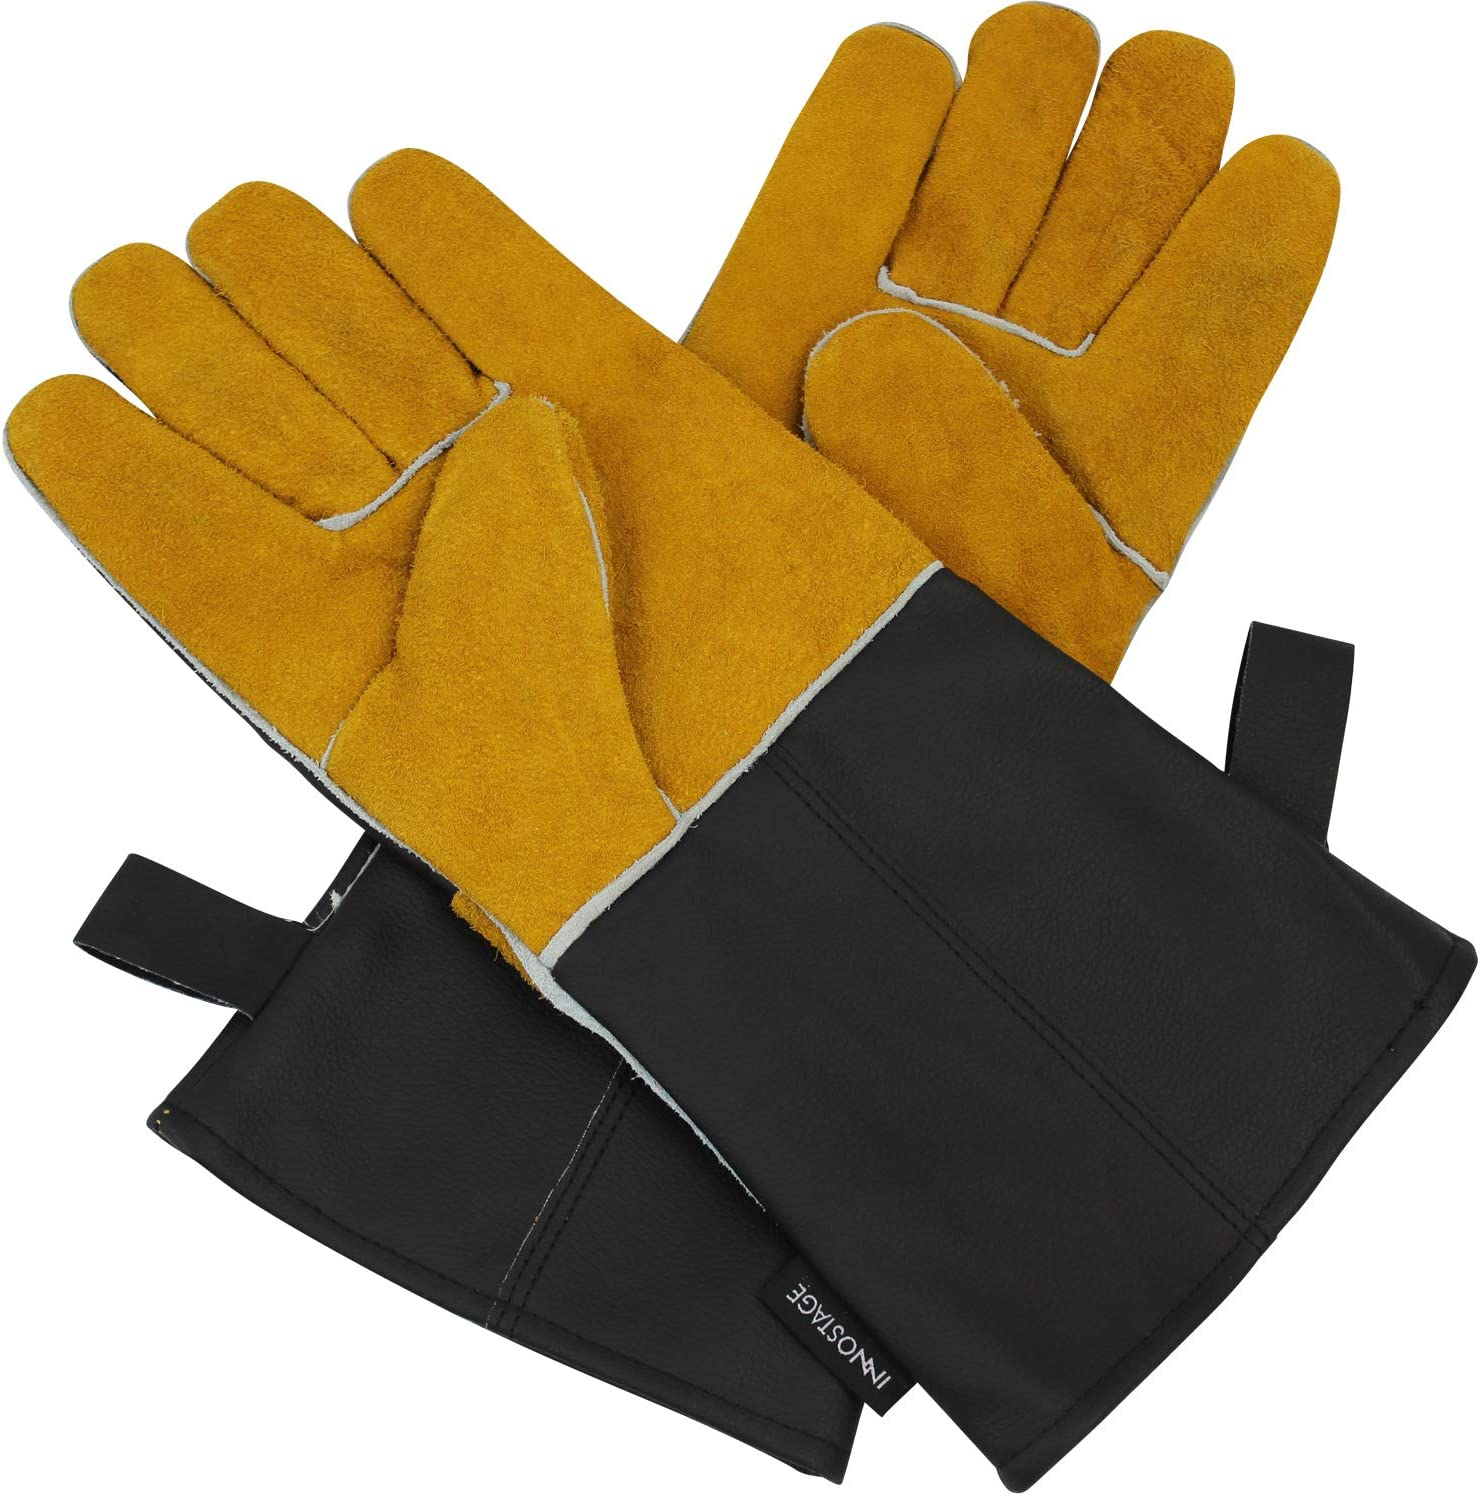 Barbecue Cooking gloves Outdoor Kitchen Travel Leather Grilling Camping